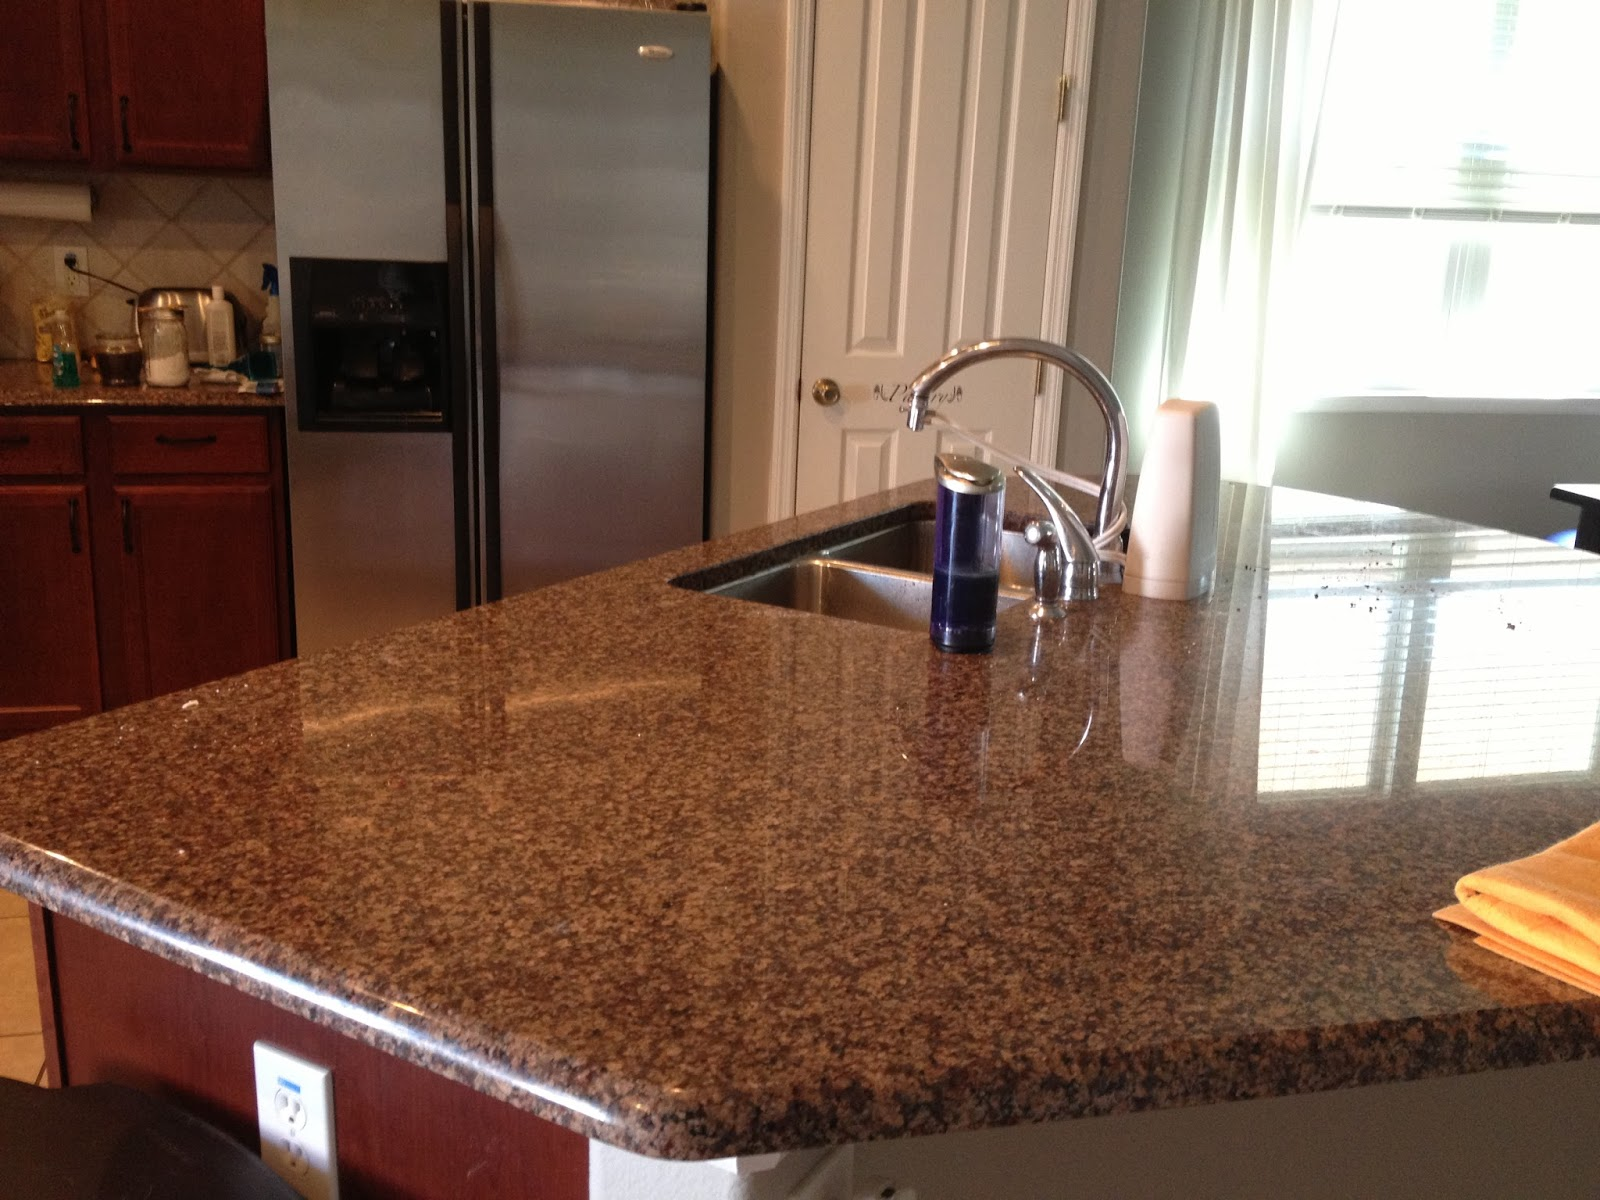 Best Way To Clean Granite Countertops How To Clean Granite Naturally The Right Way Overthrow